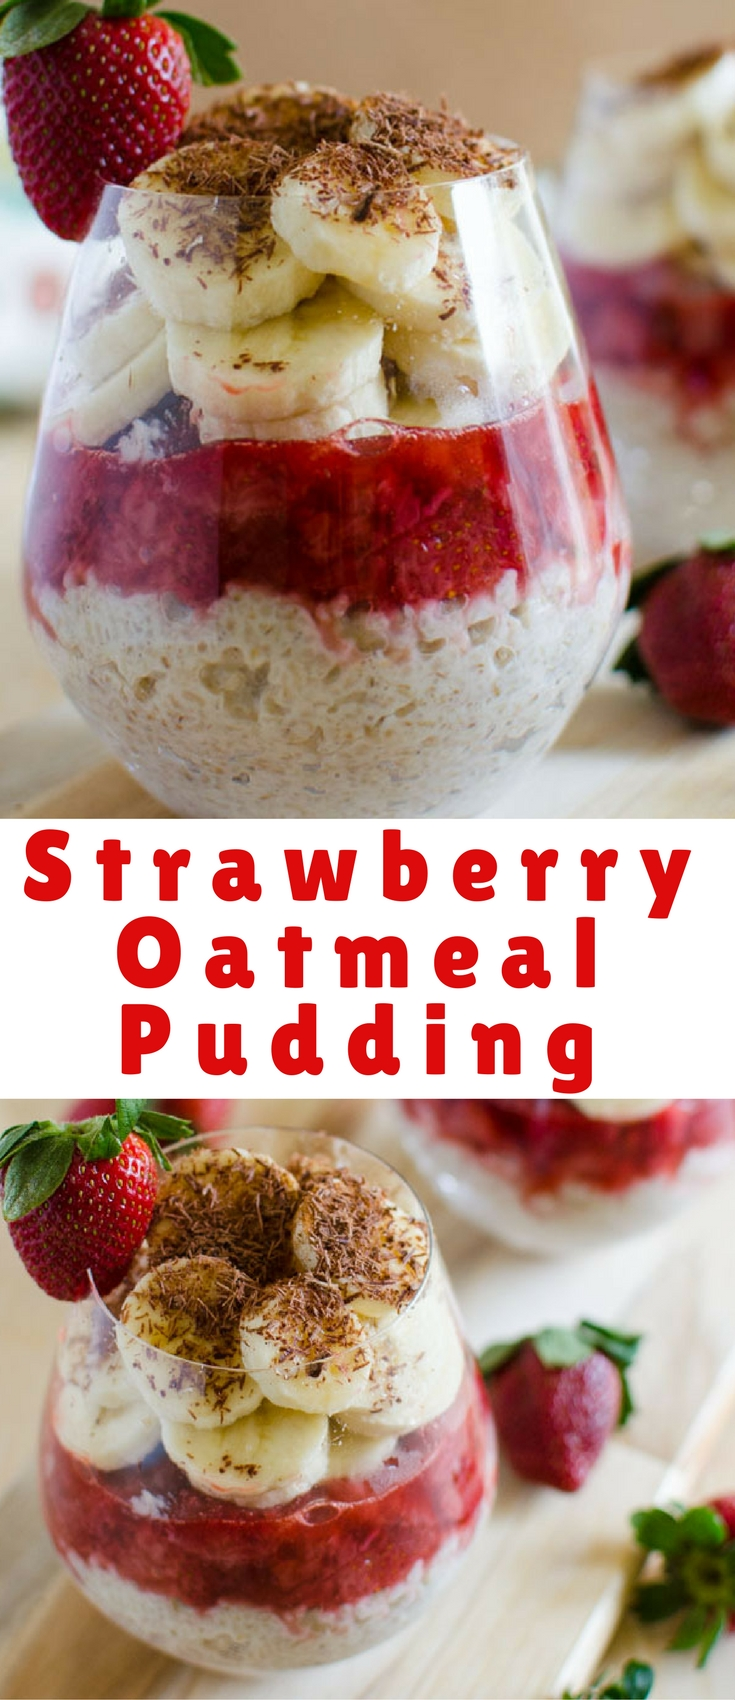 Oatmeal pudding prepared using fresh fruits like strawberries and bananas with healthiest grains like steel-cut oats are perfect to kickstart any mornings.